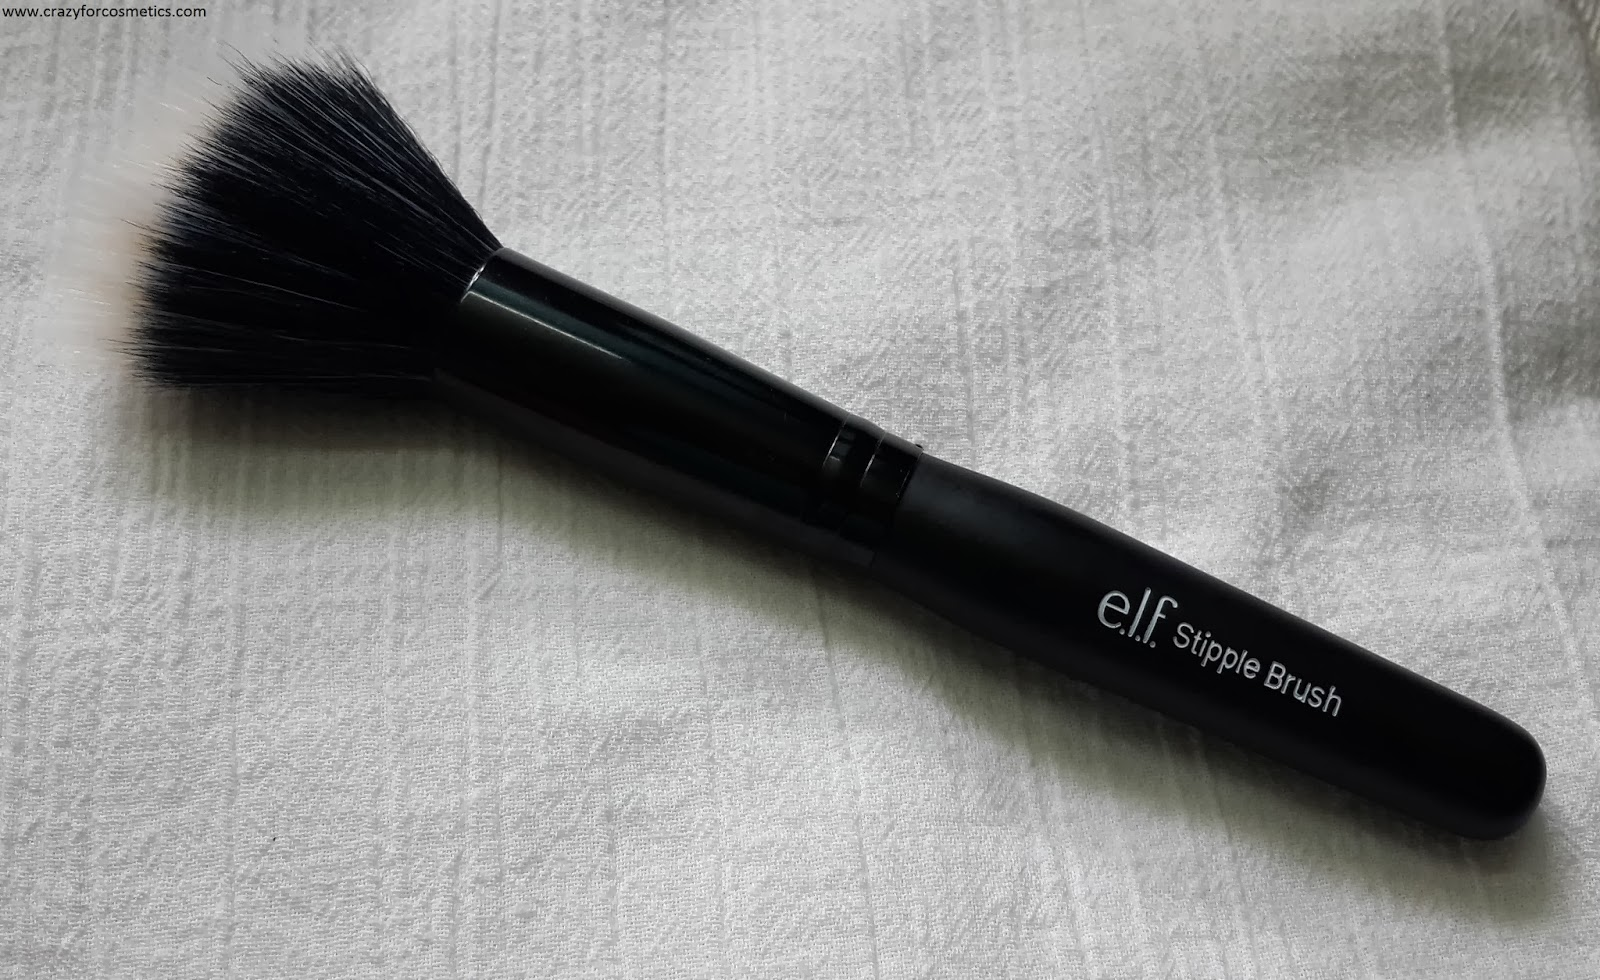 ELF Studio Stipple Brush- ELF Stipple Brush- ELF Stipple Brush travel set